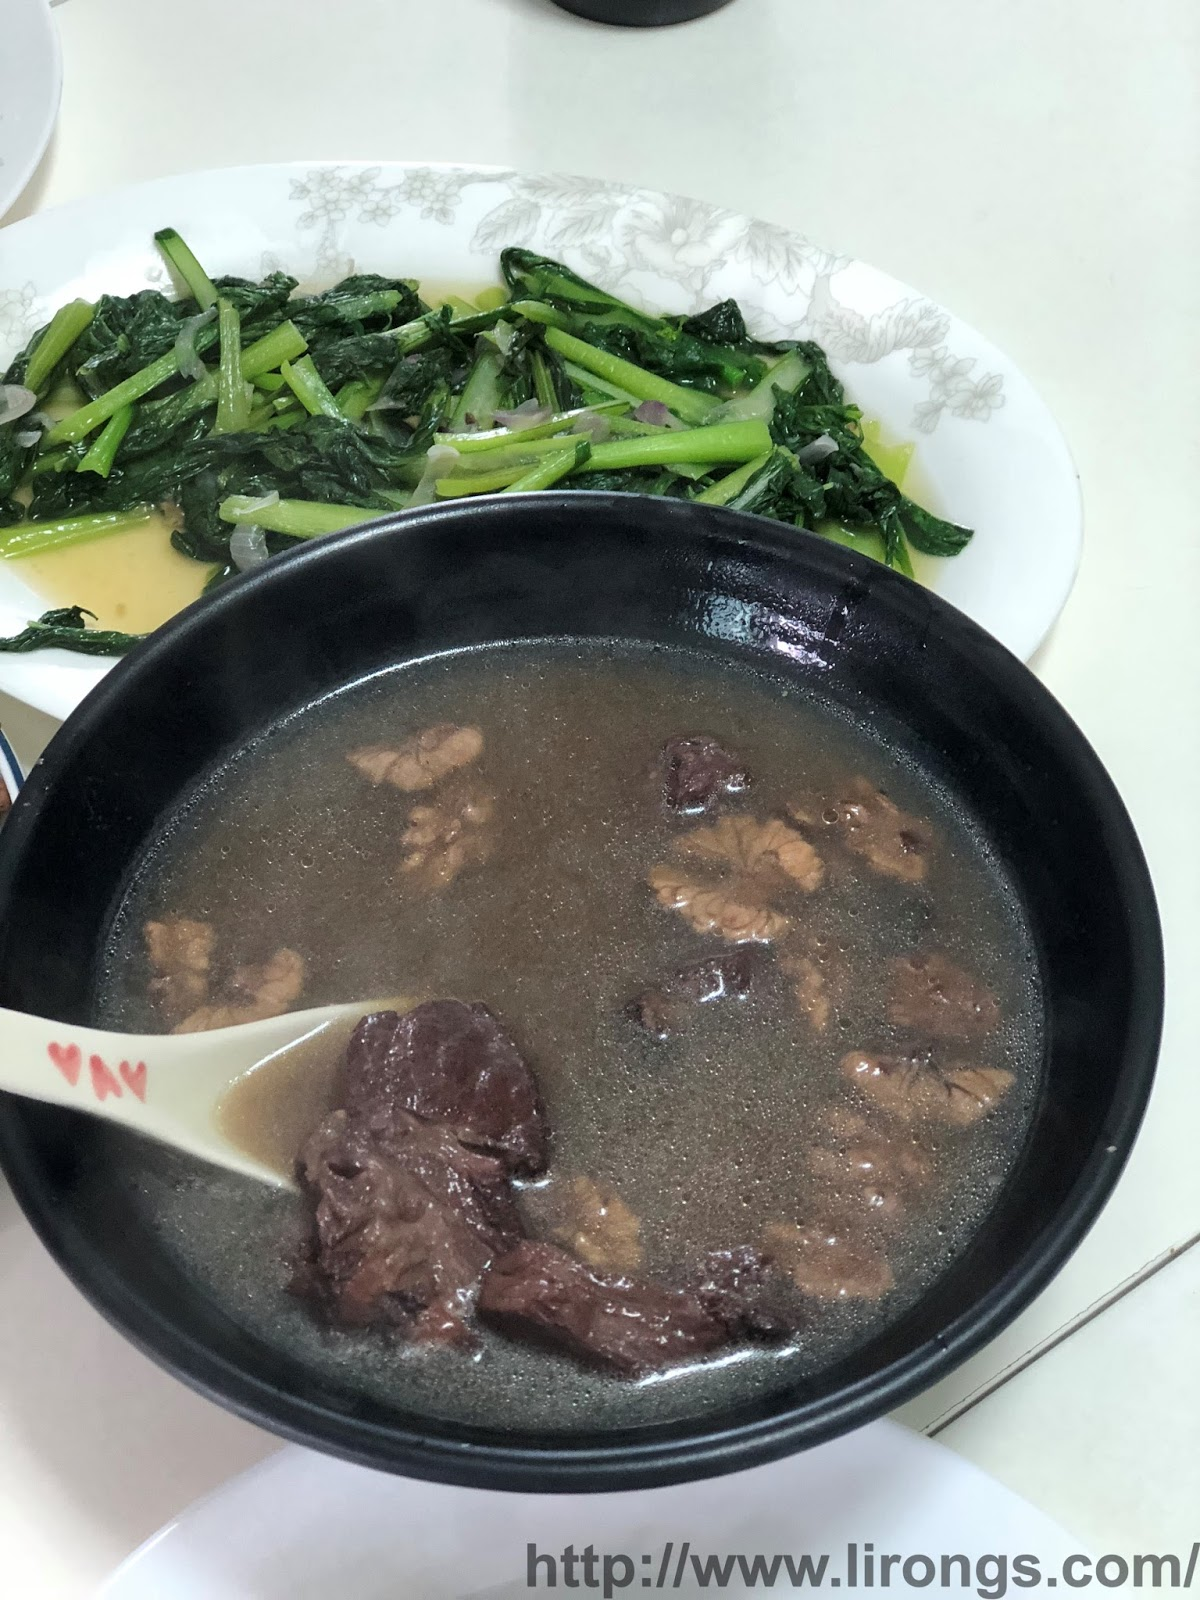 Lirong | A singapore food and lifestyle blog: PEM